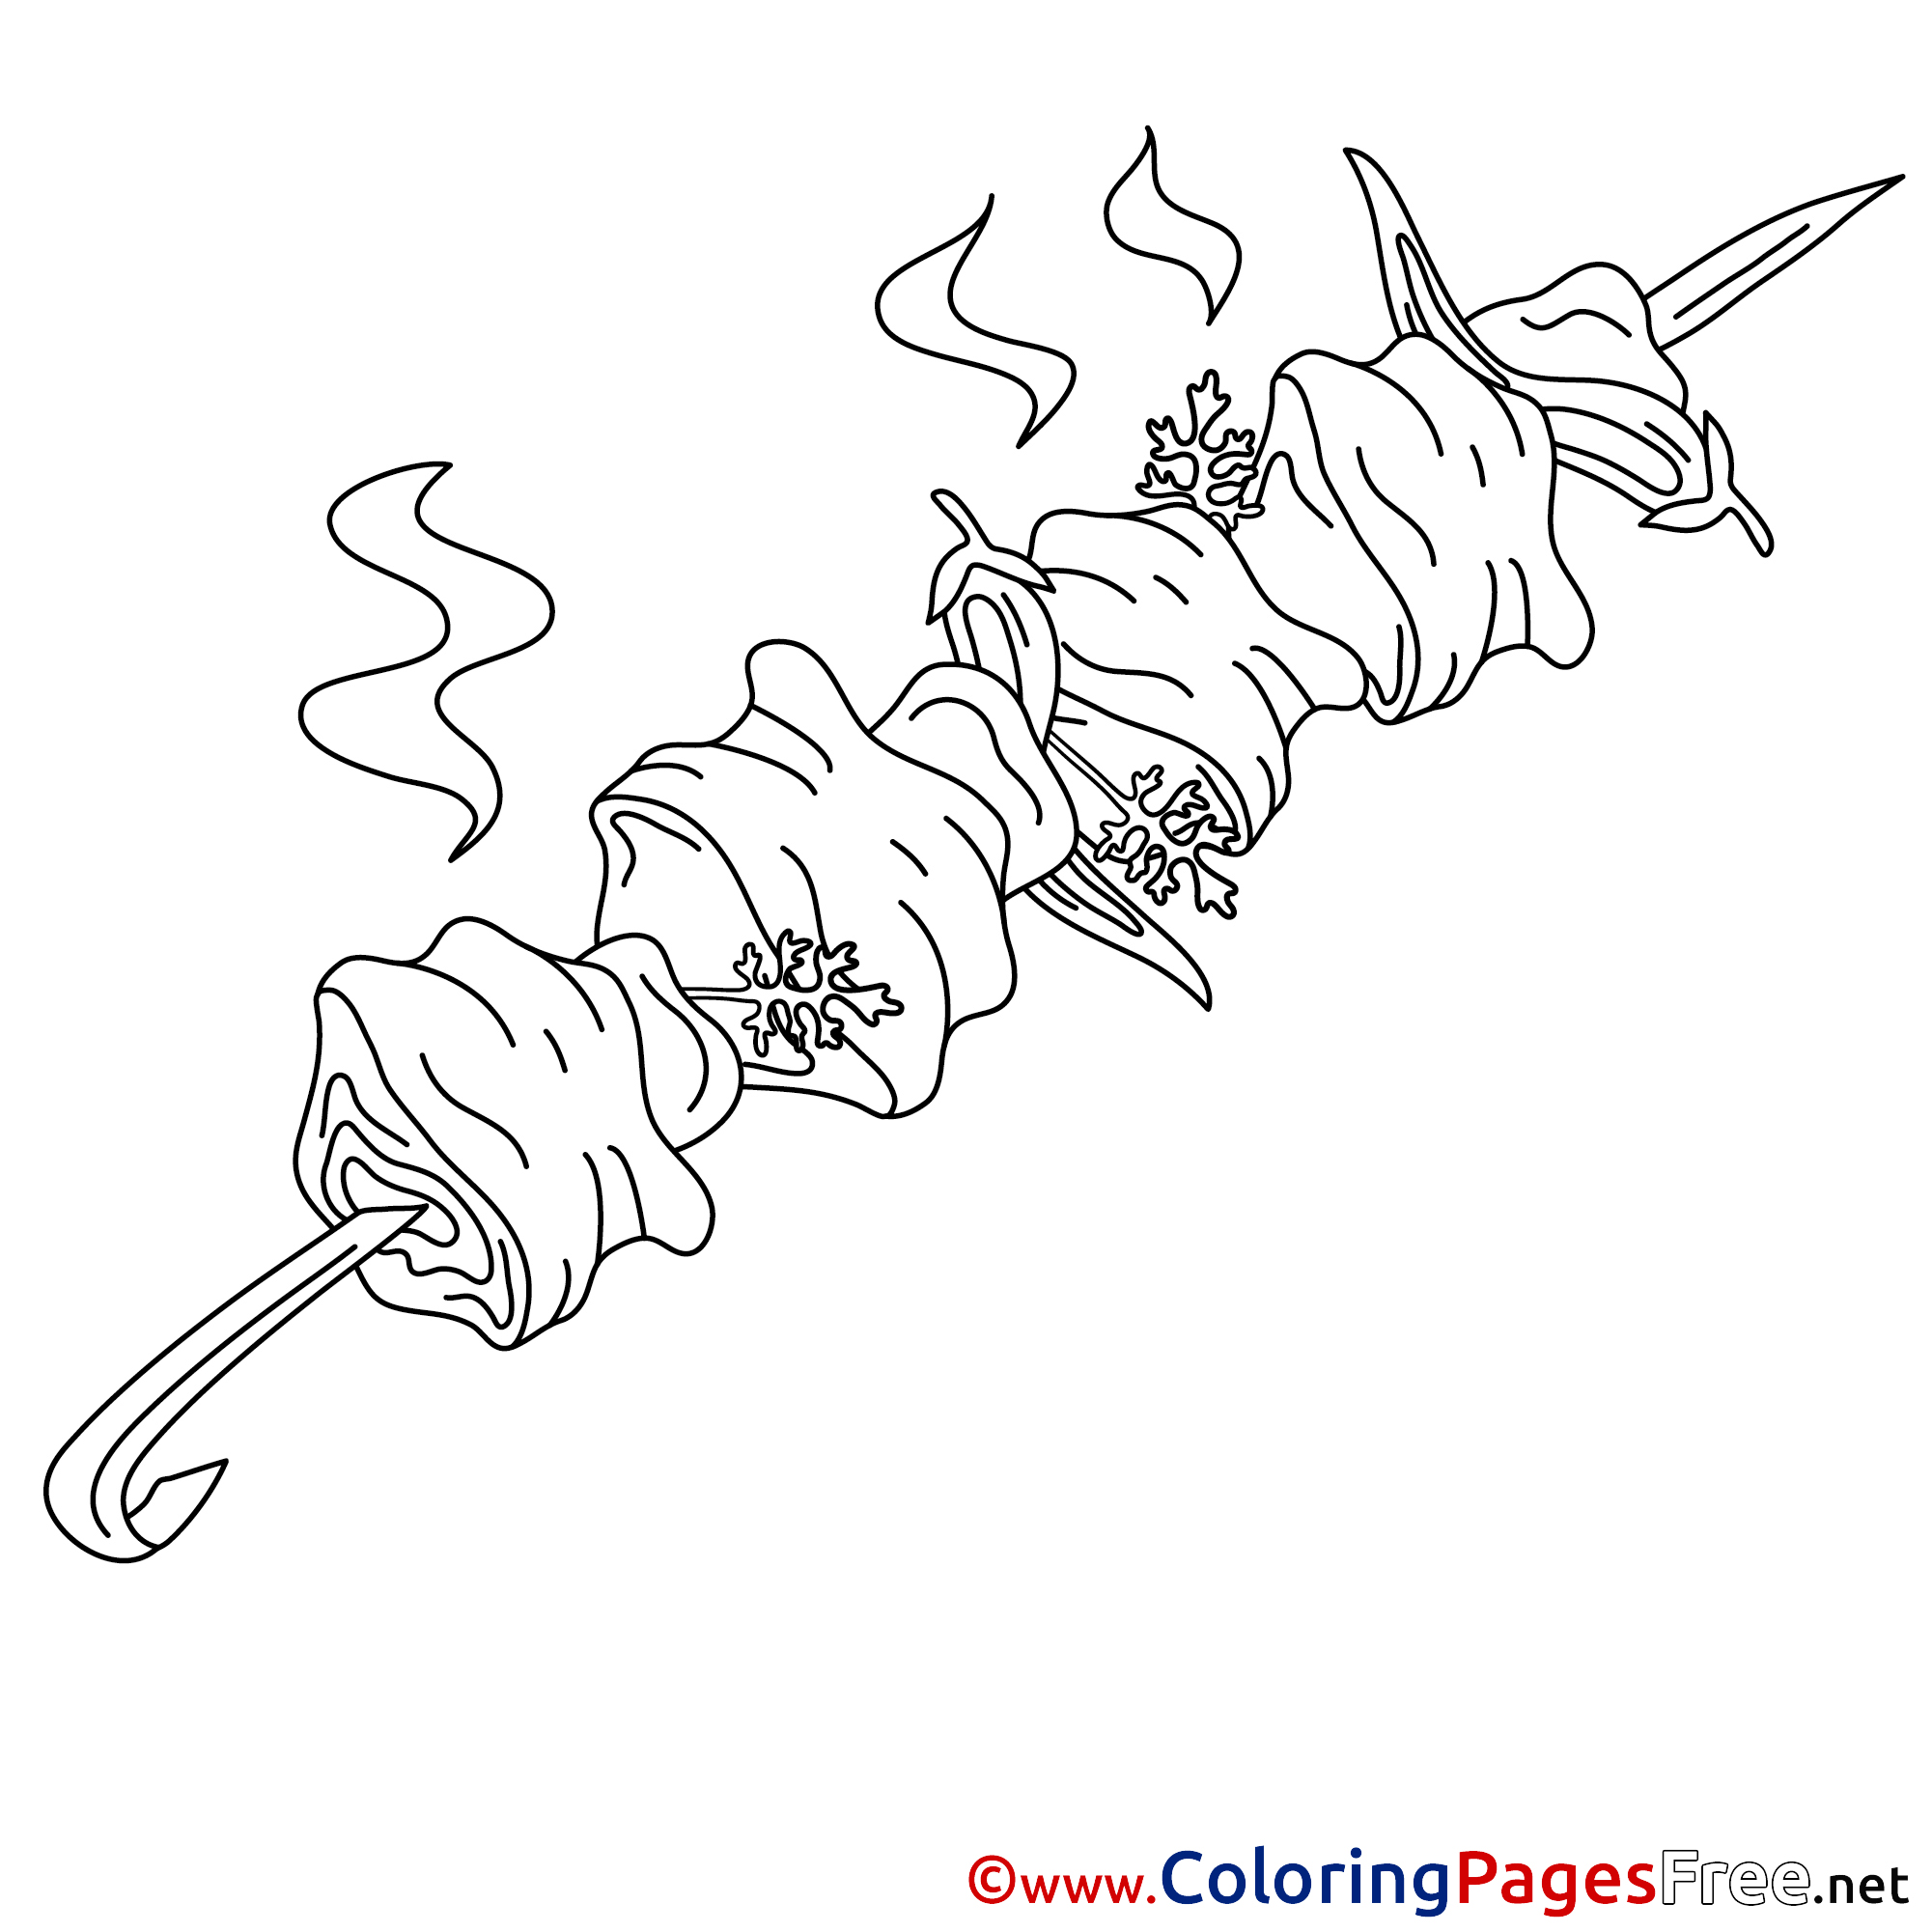 Kebab for free Coloring Pages